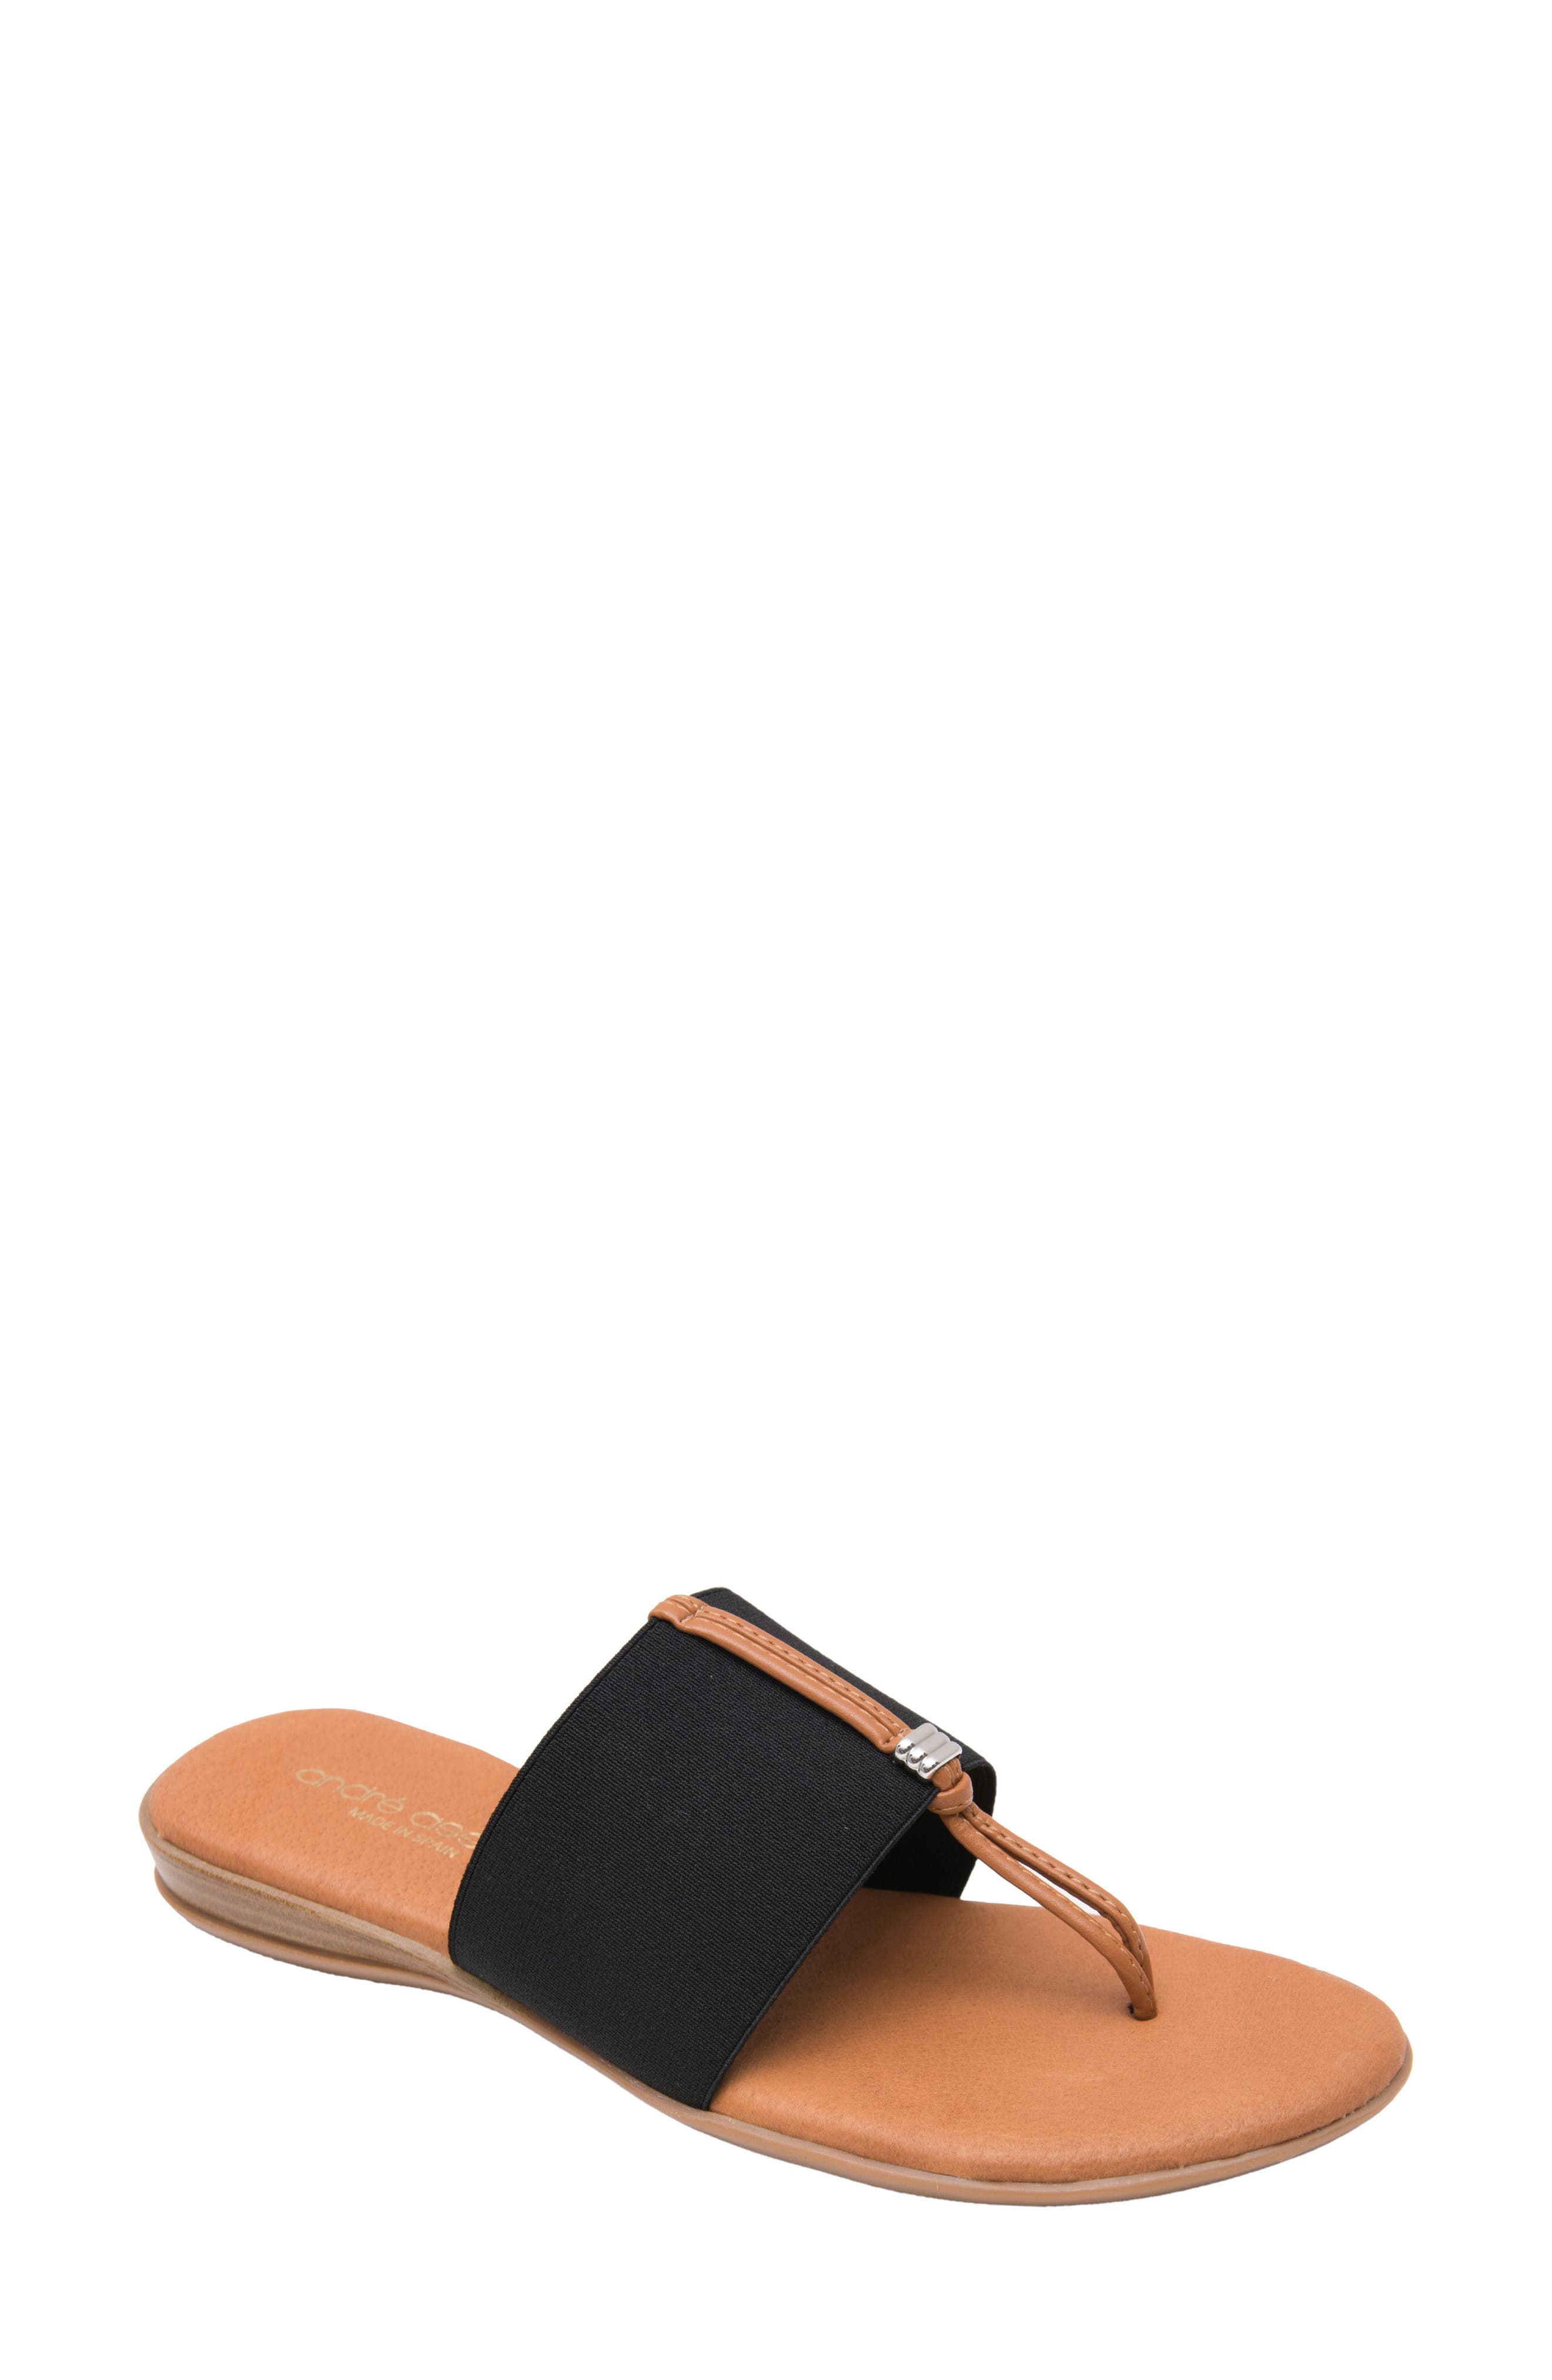 ANDRE ASSOUS Nice Sandal in Black Fabric